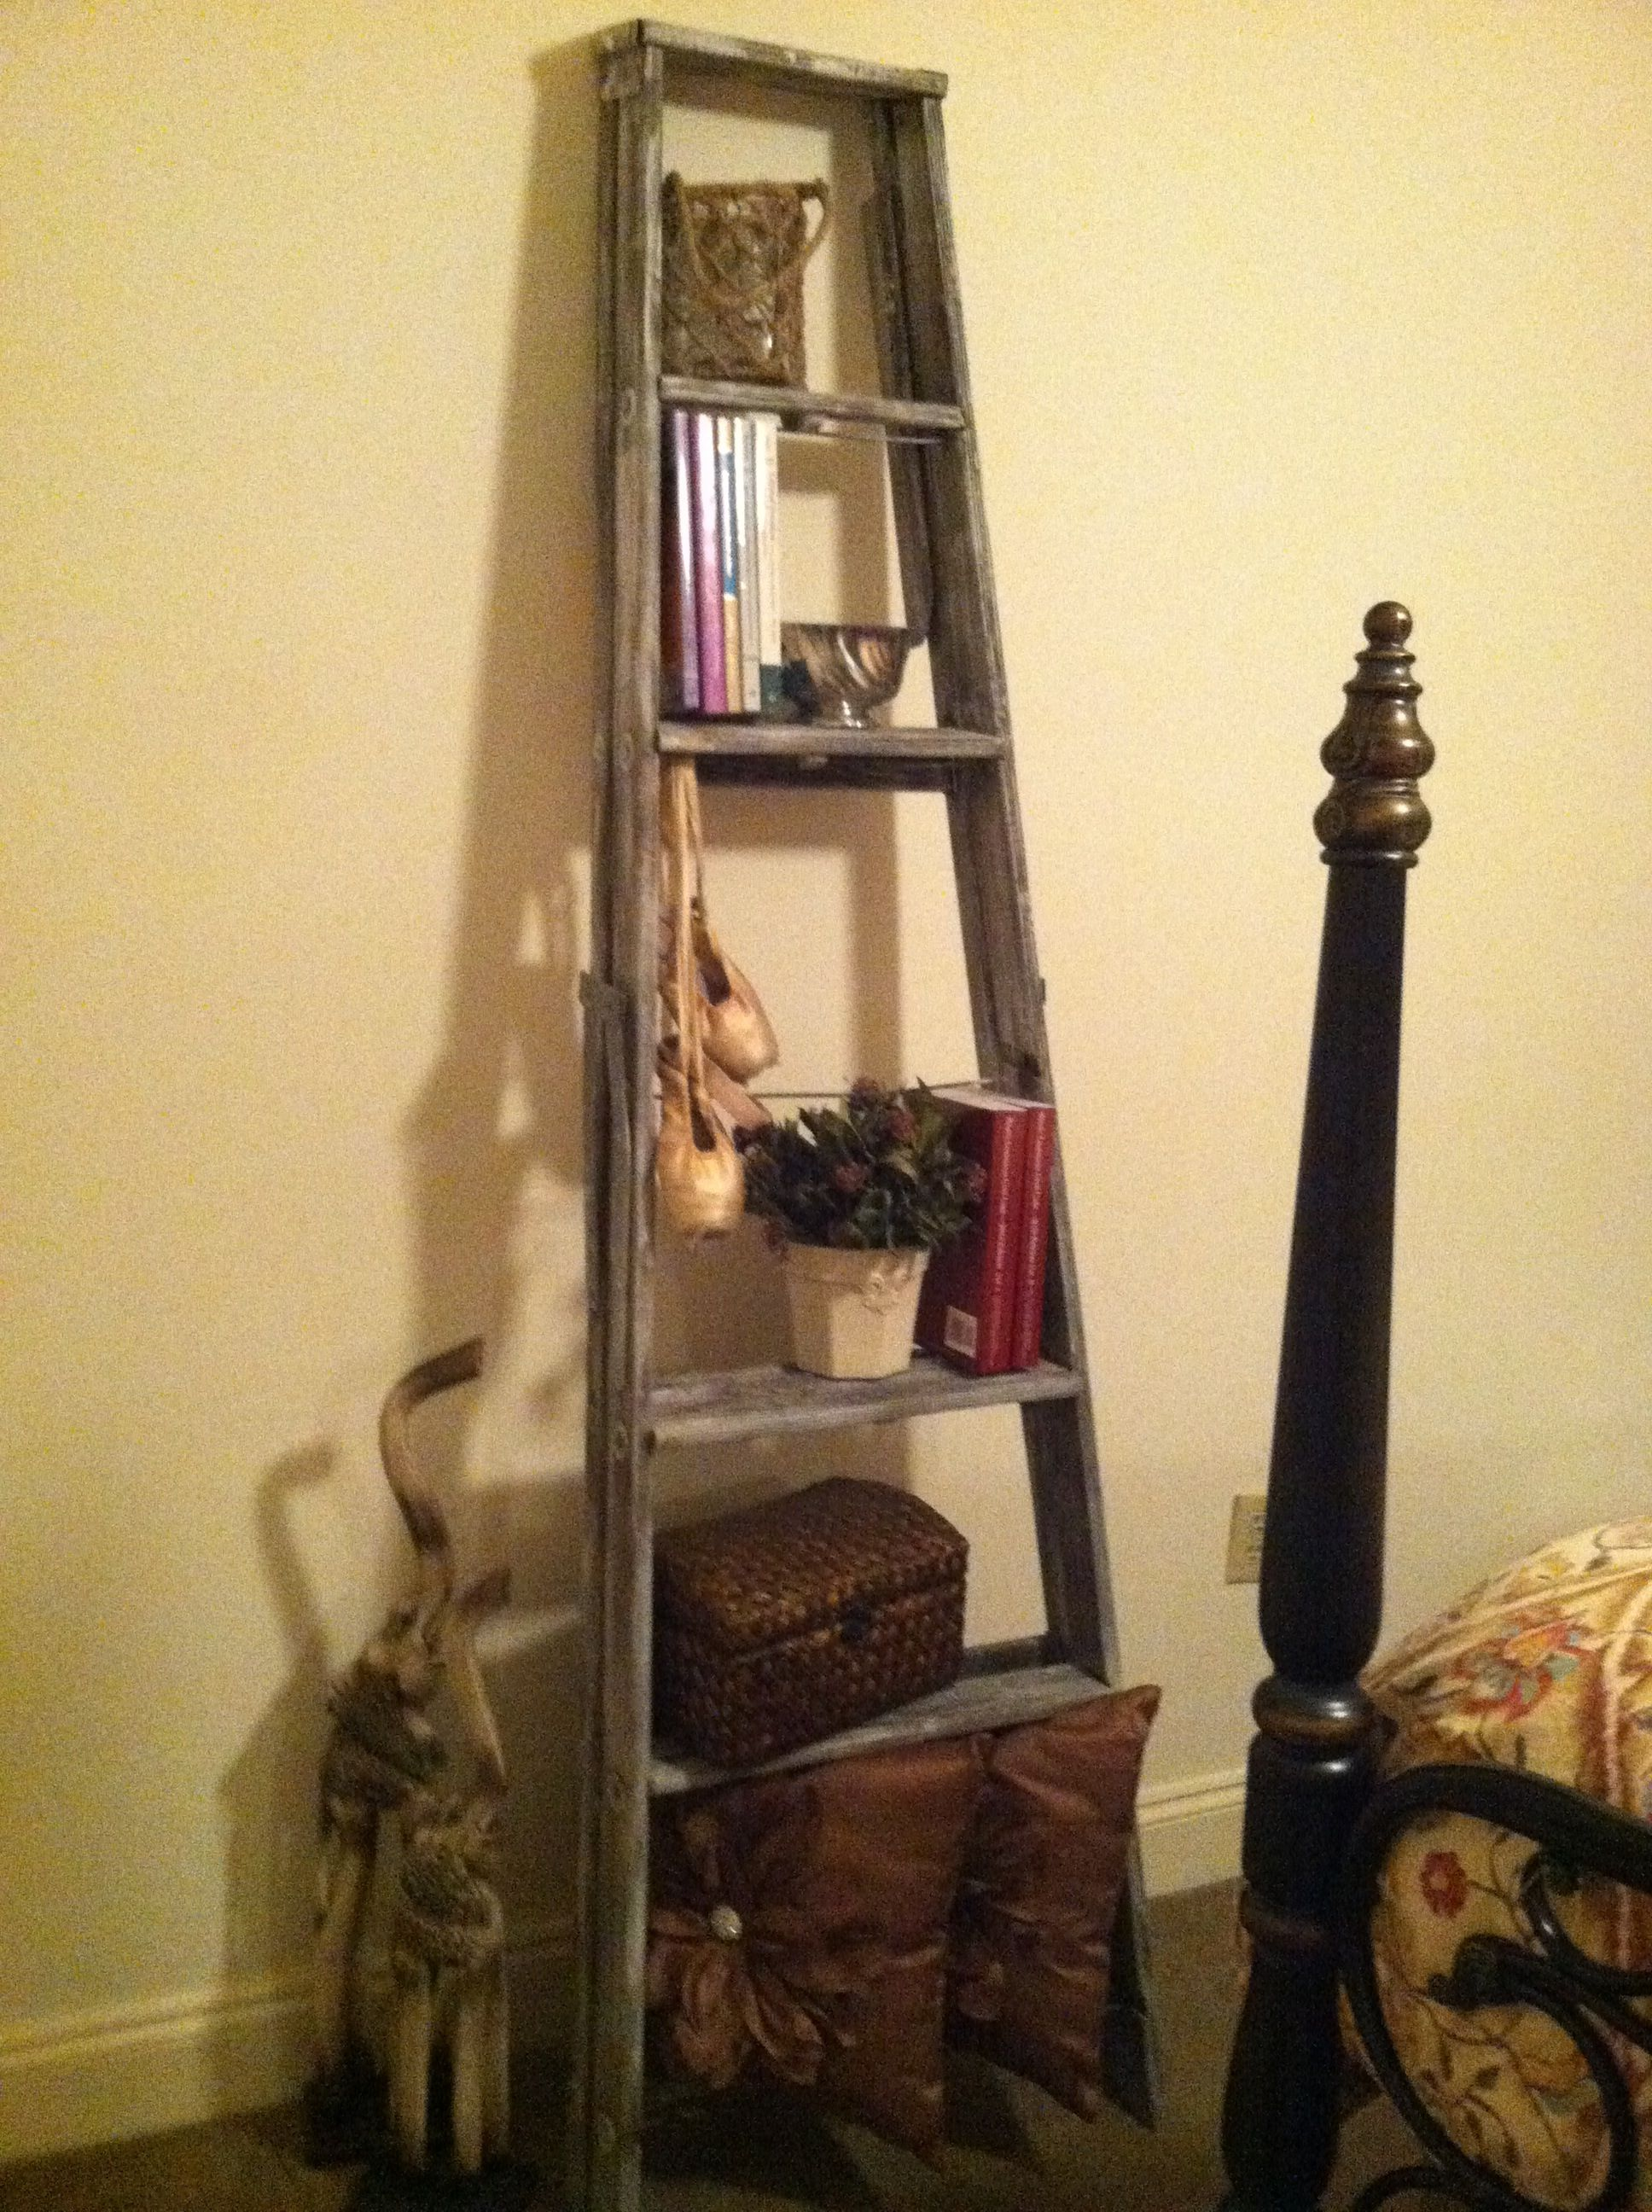 Turn An Old Wooden Ladder Into A Decorative Bookshelf Add Paint To Some Areas For A Distressed Rustic Look By Hope Old Wooden Ladders Home Decor Ladder Decor